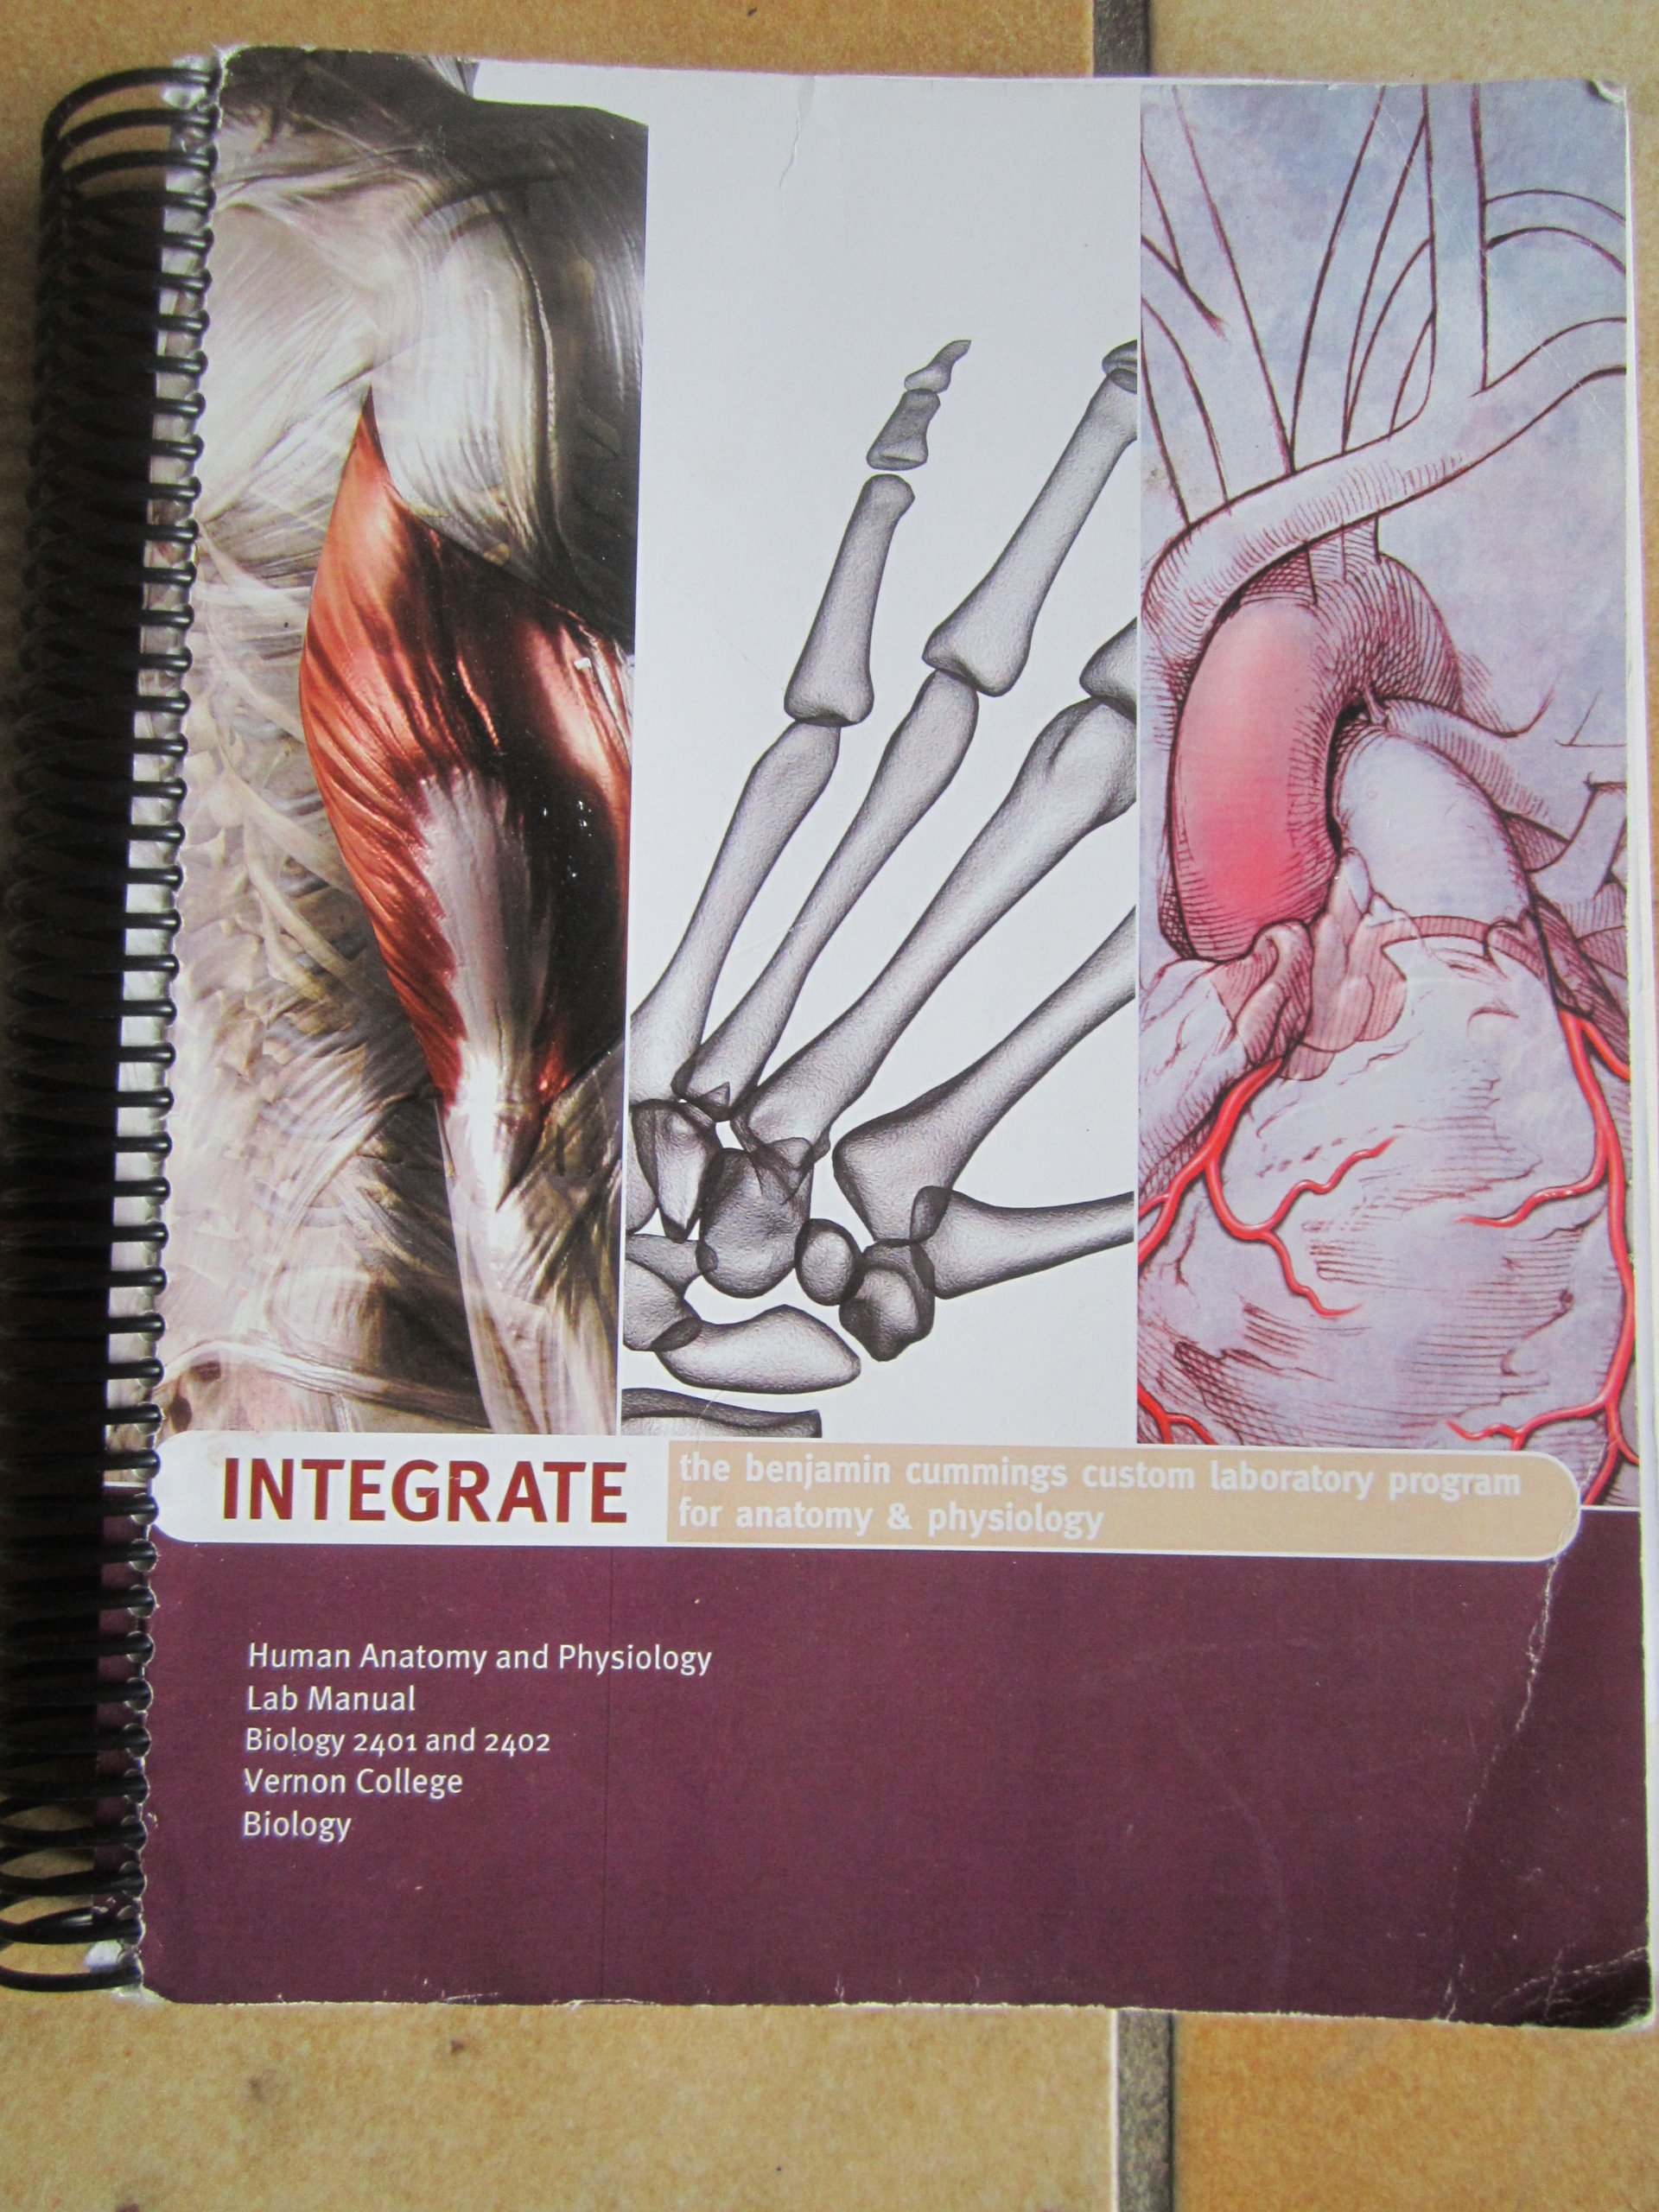 Human Anatomy and Physiology Lab Manual Vernon College - Biology ...